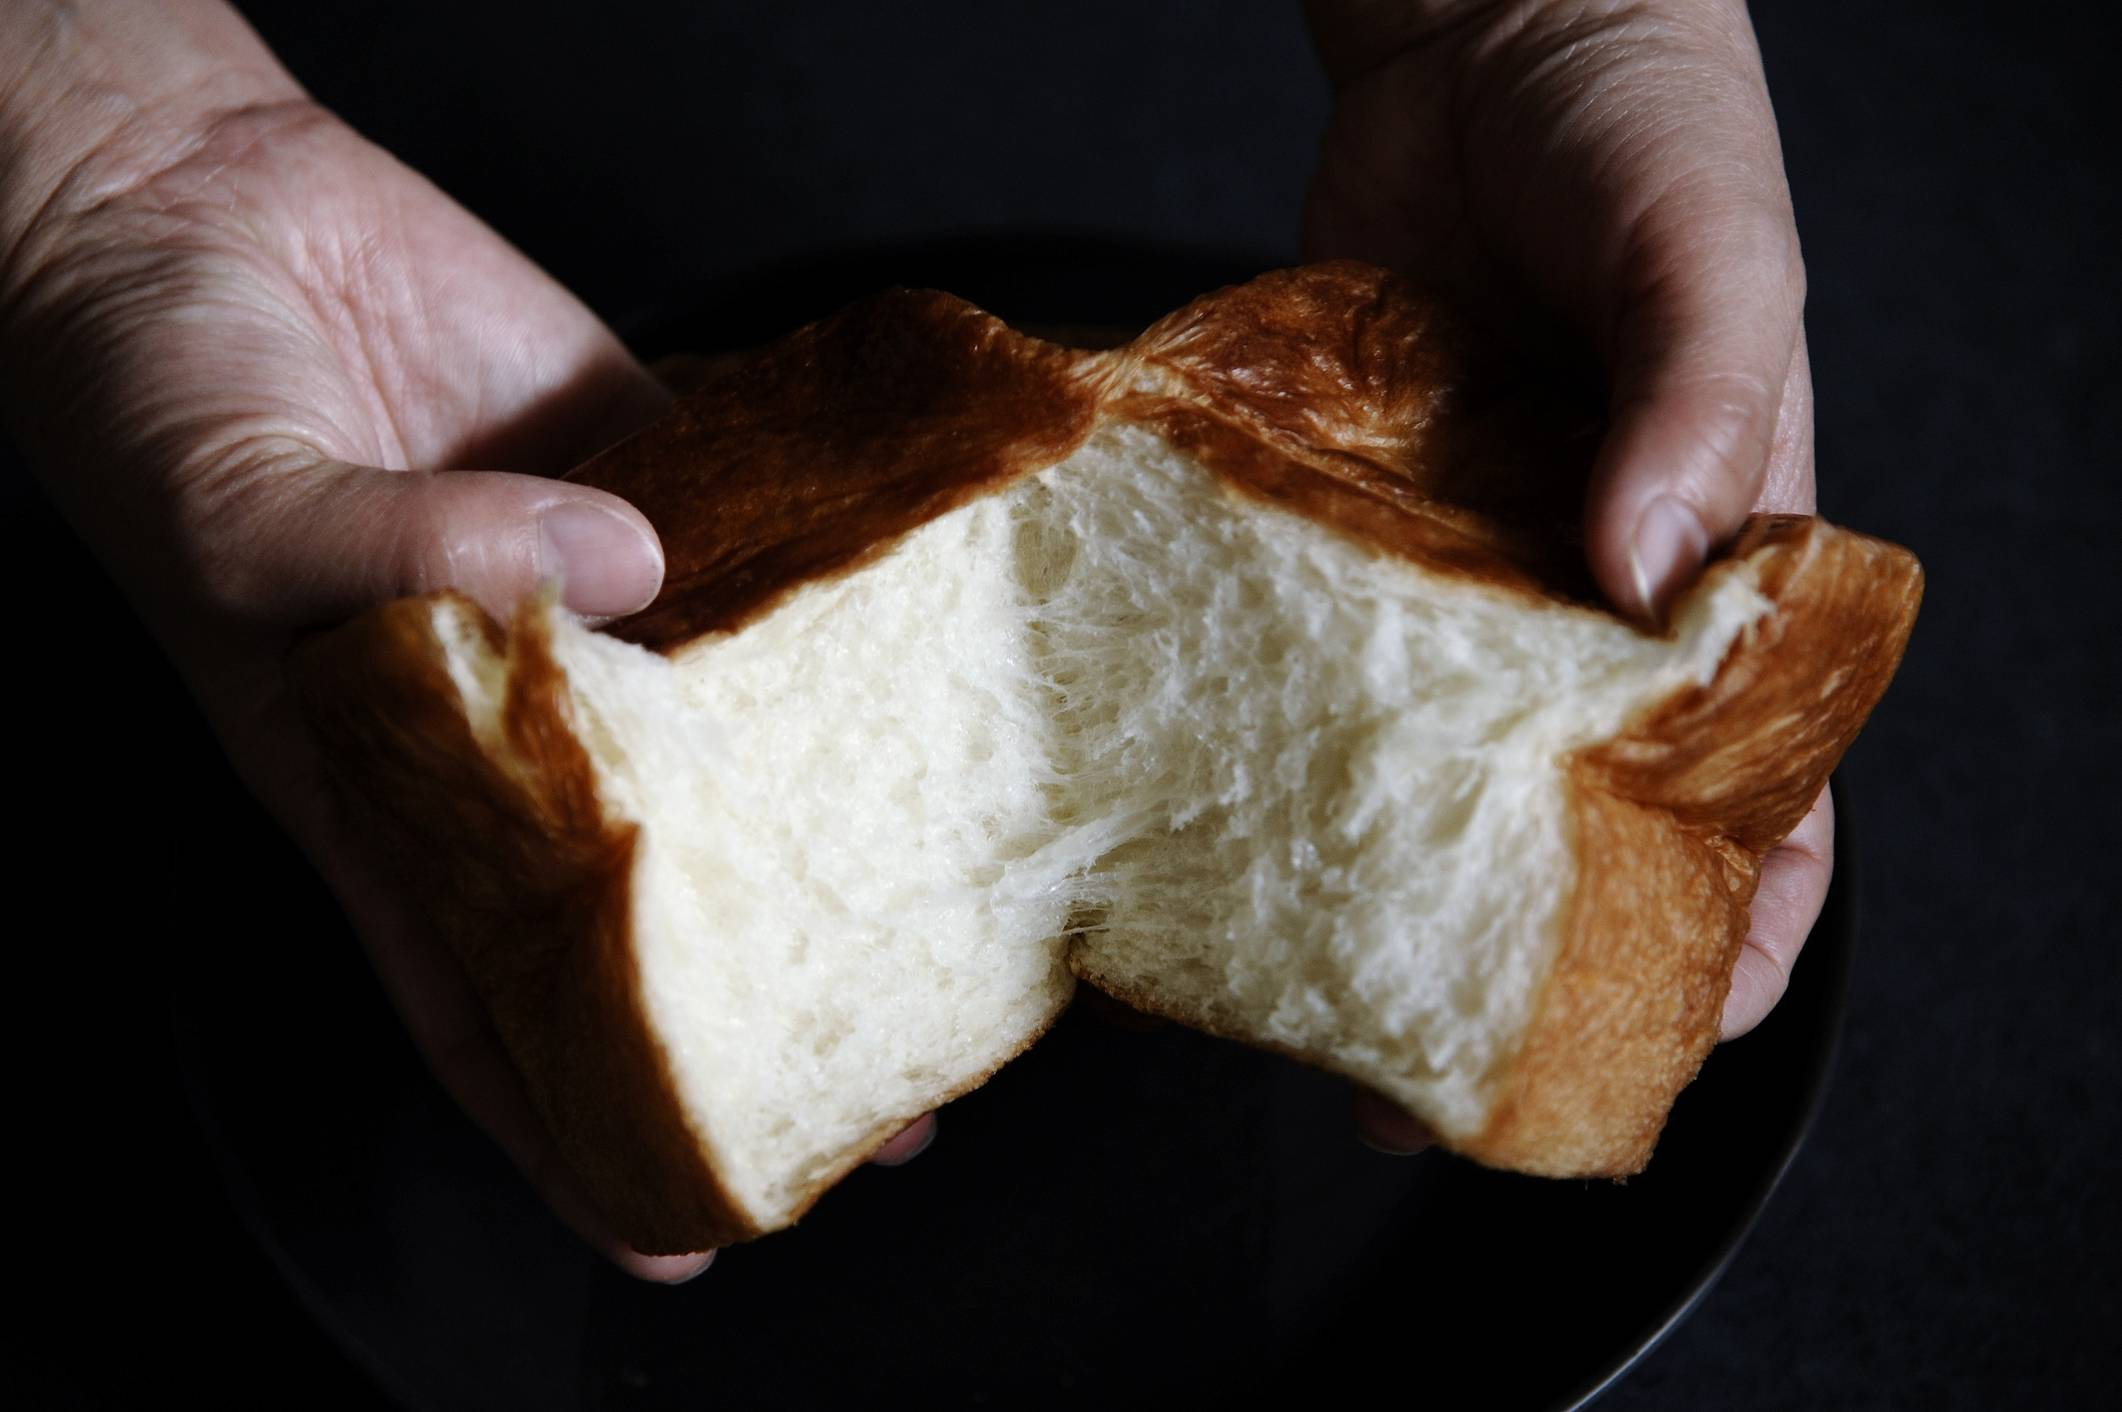 Consumers have been lining up for hours to purchase high-end products such as the white and pillowy square-shaped bread called shokupan. | GETTY IMAGES